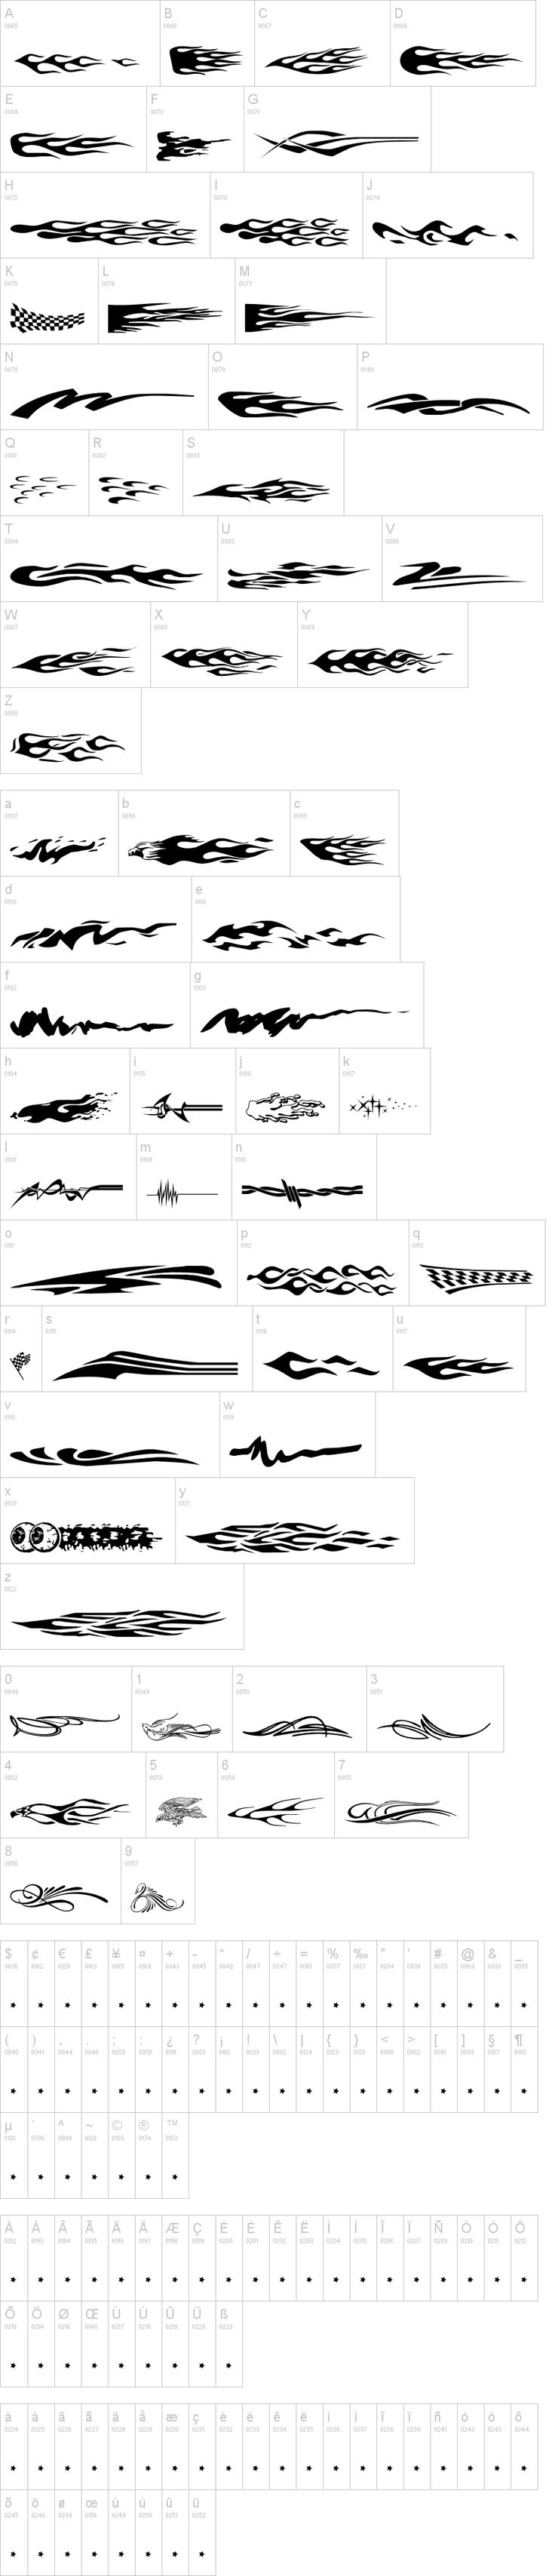 71 best flame drawing images on pinterest pinstriping stencils